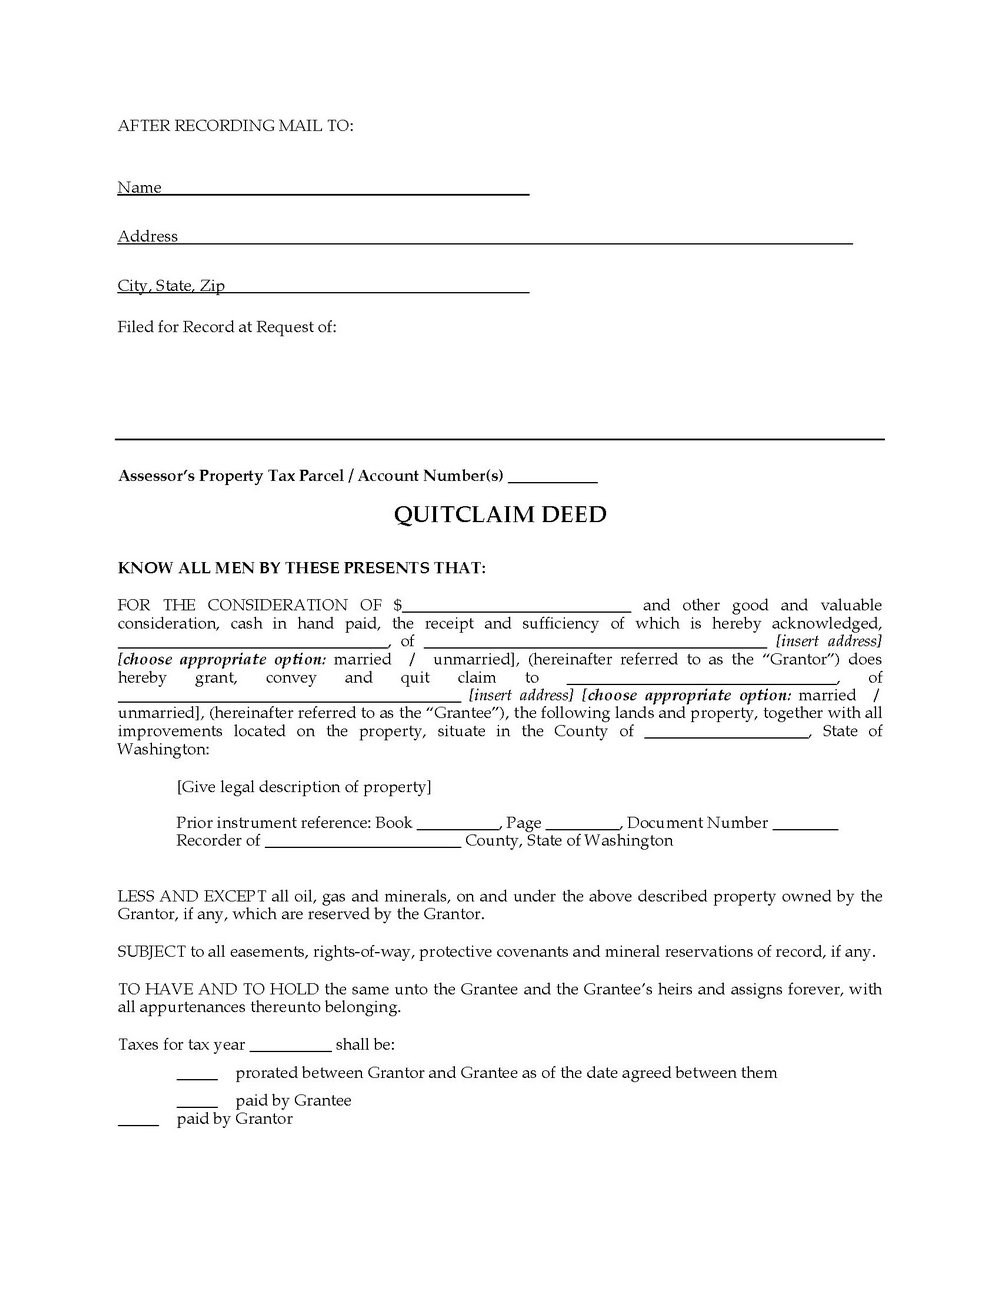 Washington Quit Claim Deed Form